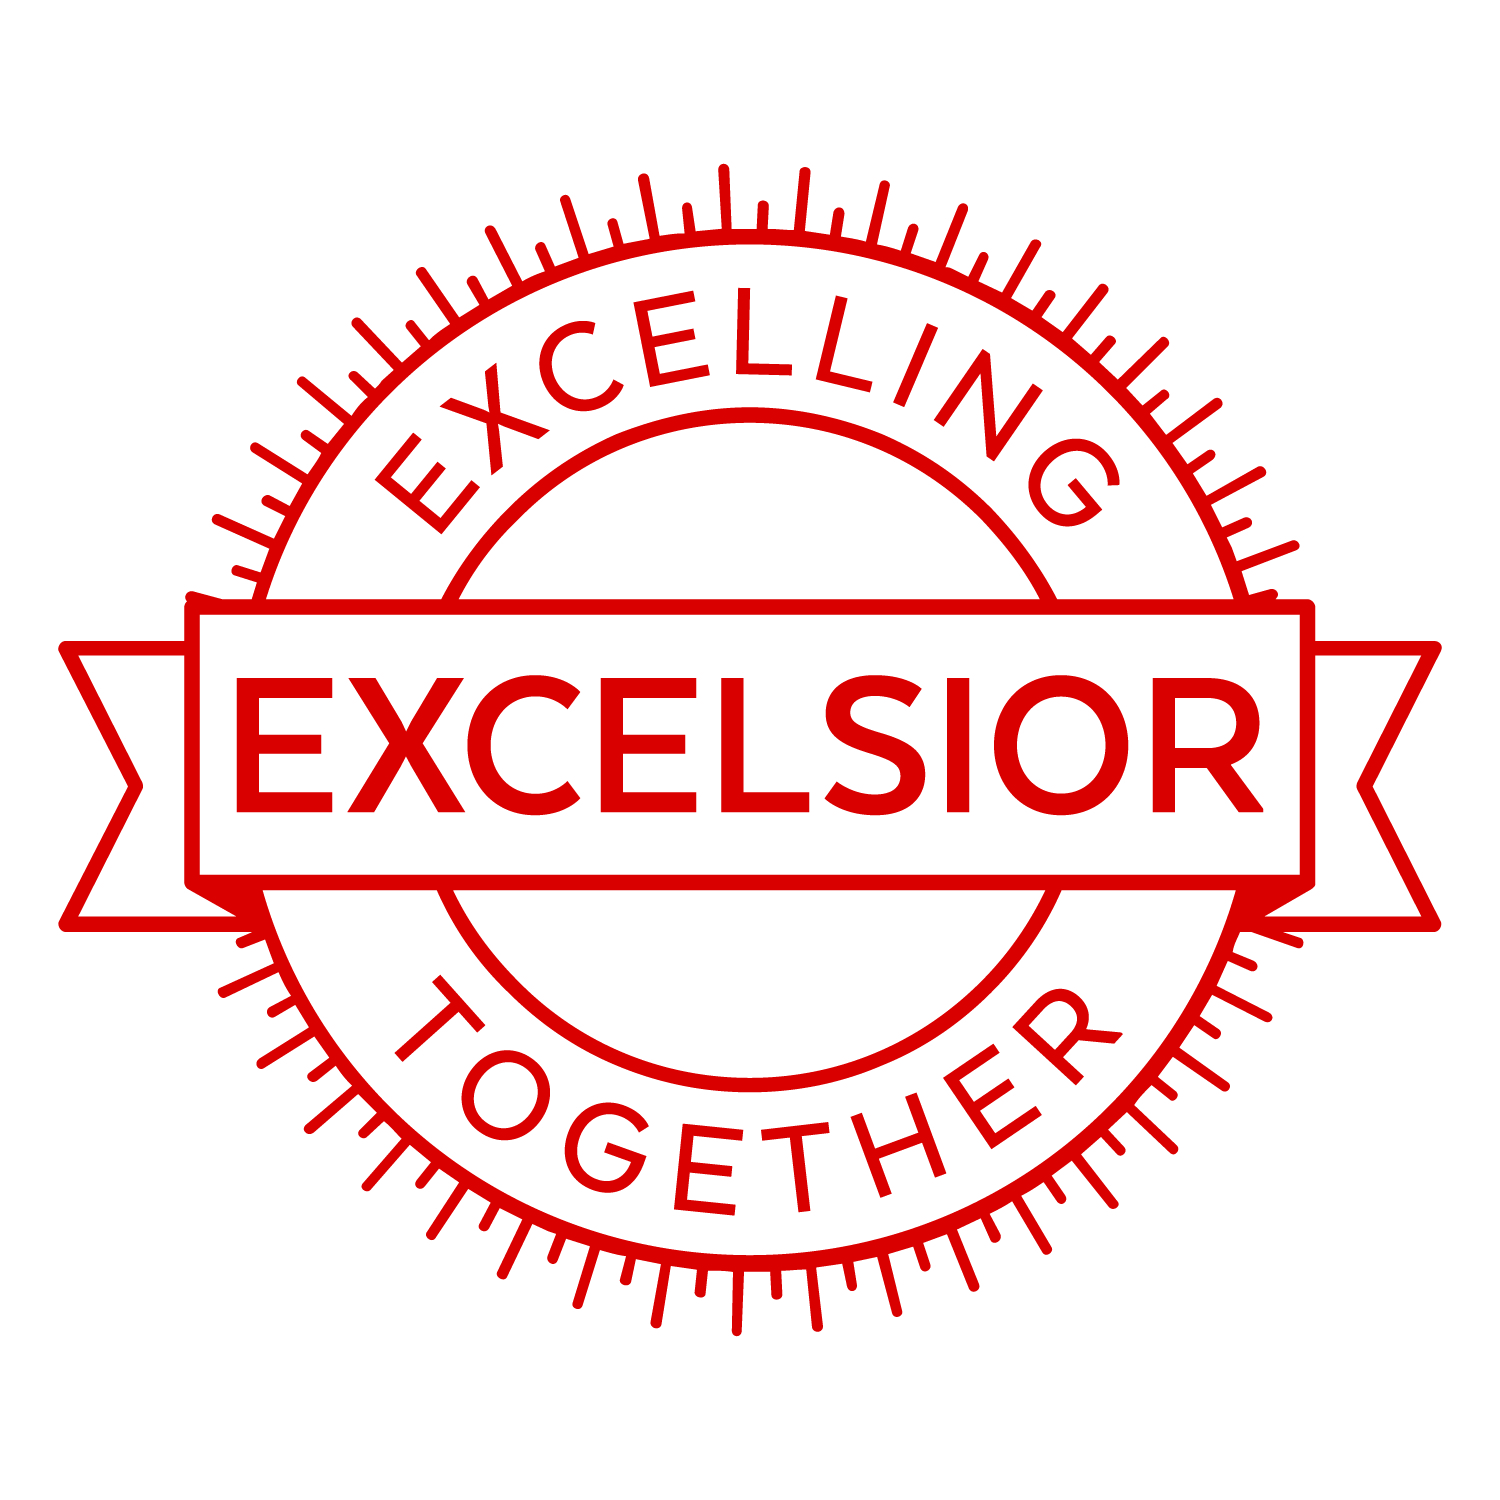 Excelling Excelsior